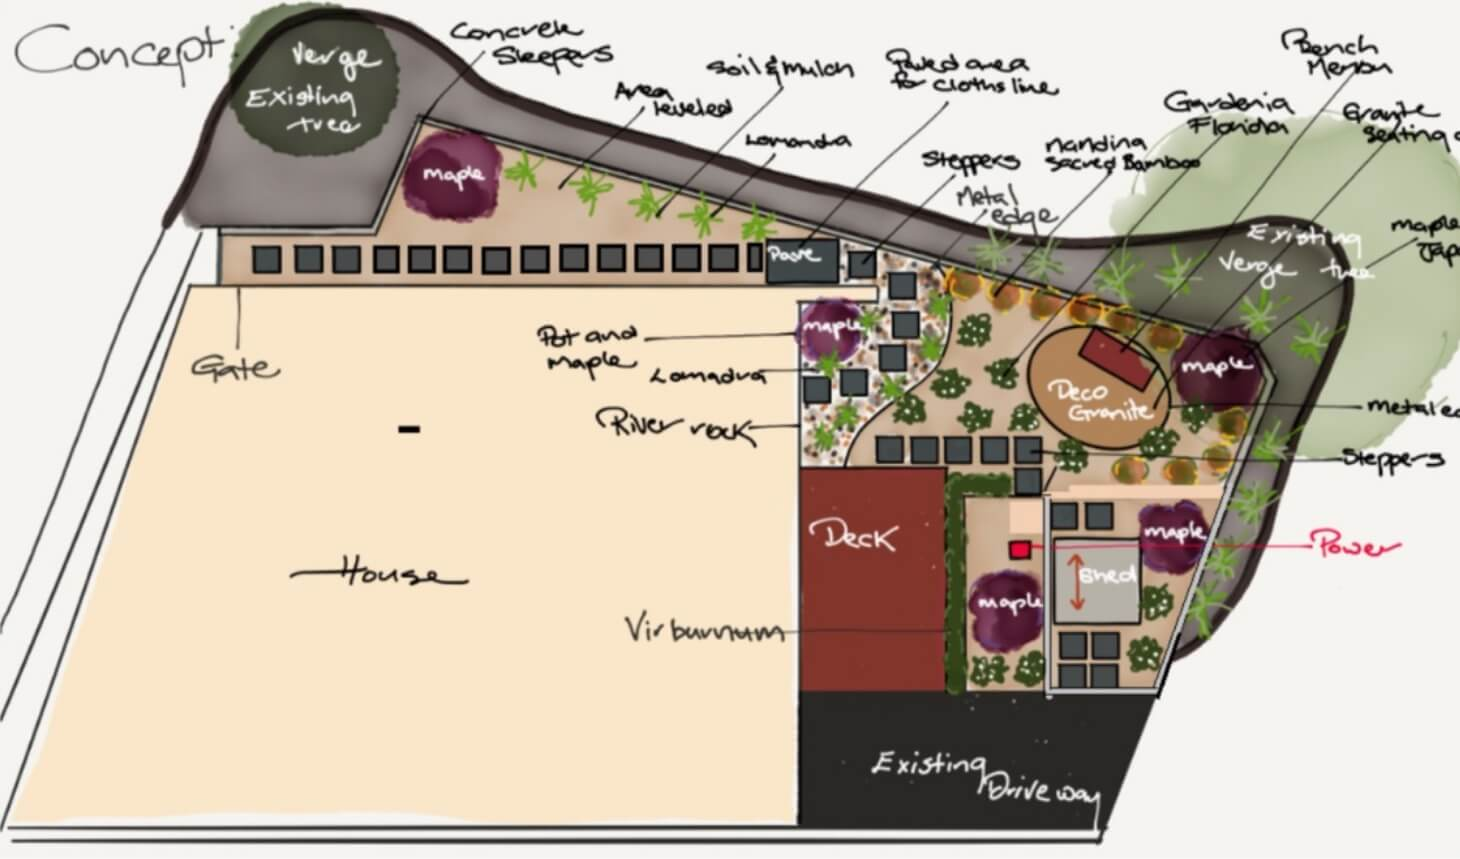 Gardengigs Landscaping Canberra Services - Landscaping Design Concept Drawing